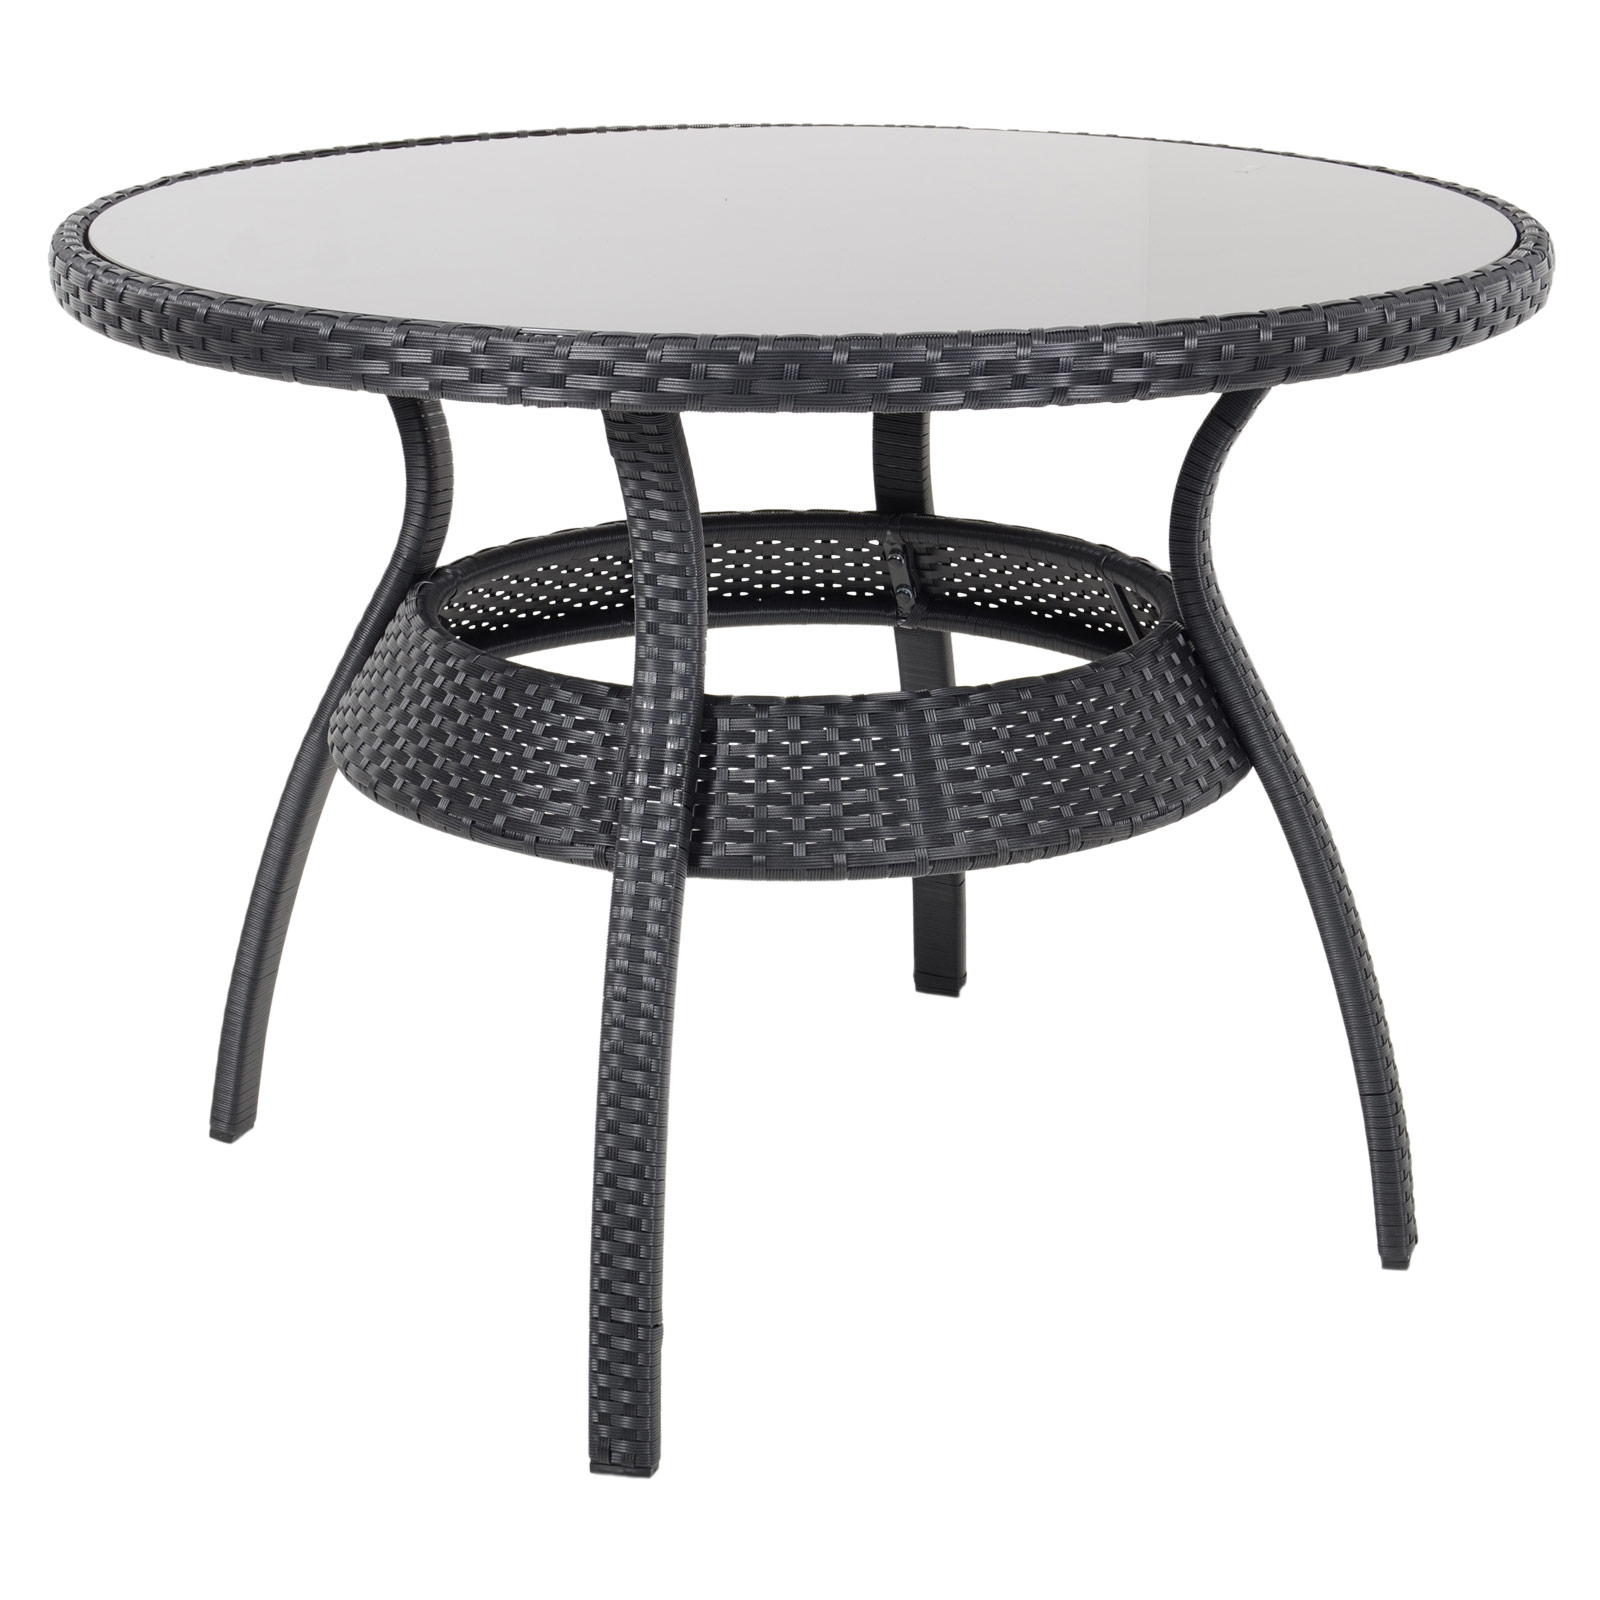 Rattan Dining Table And Chairs: Ravenna Dining Table 4 Chairs Black Rattan Wicker